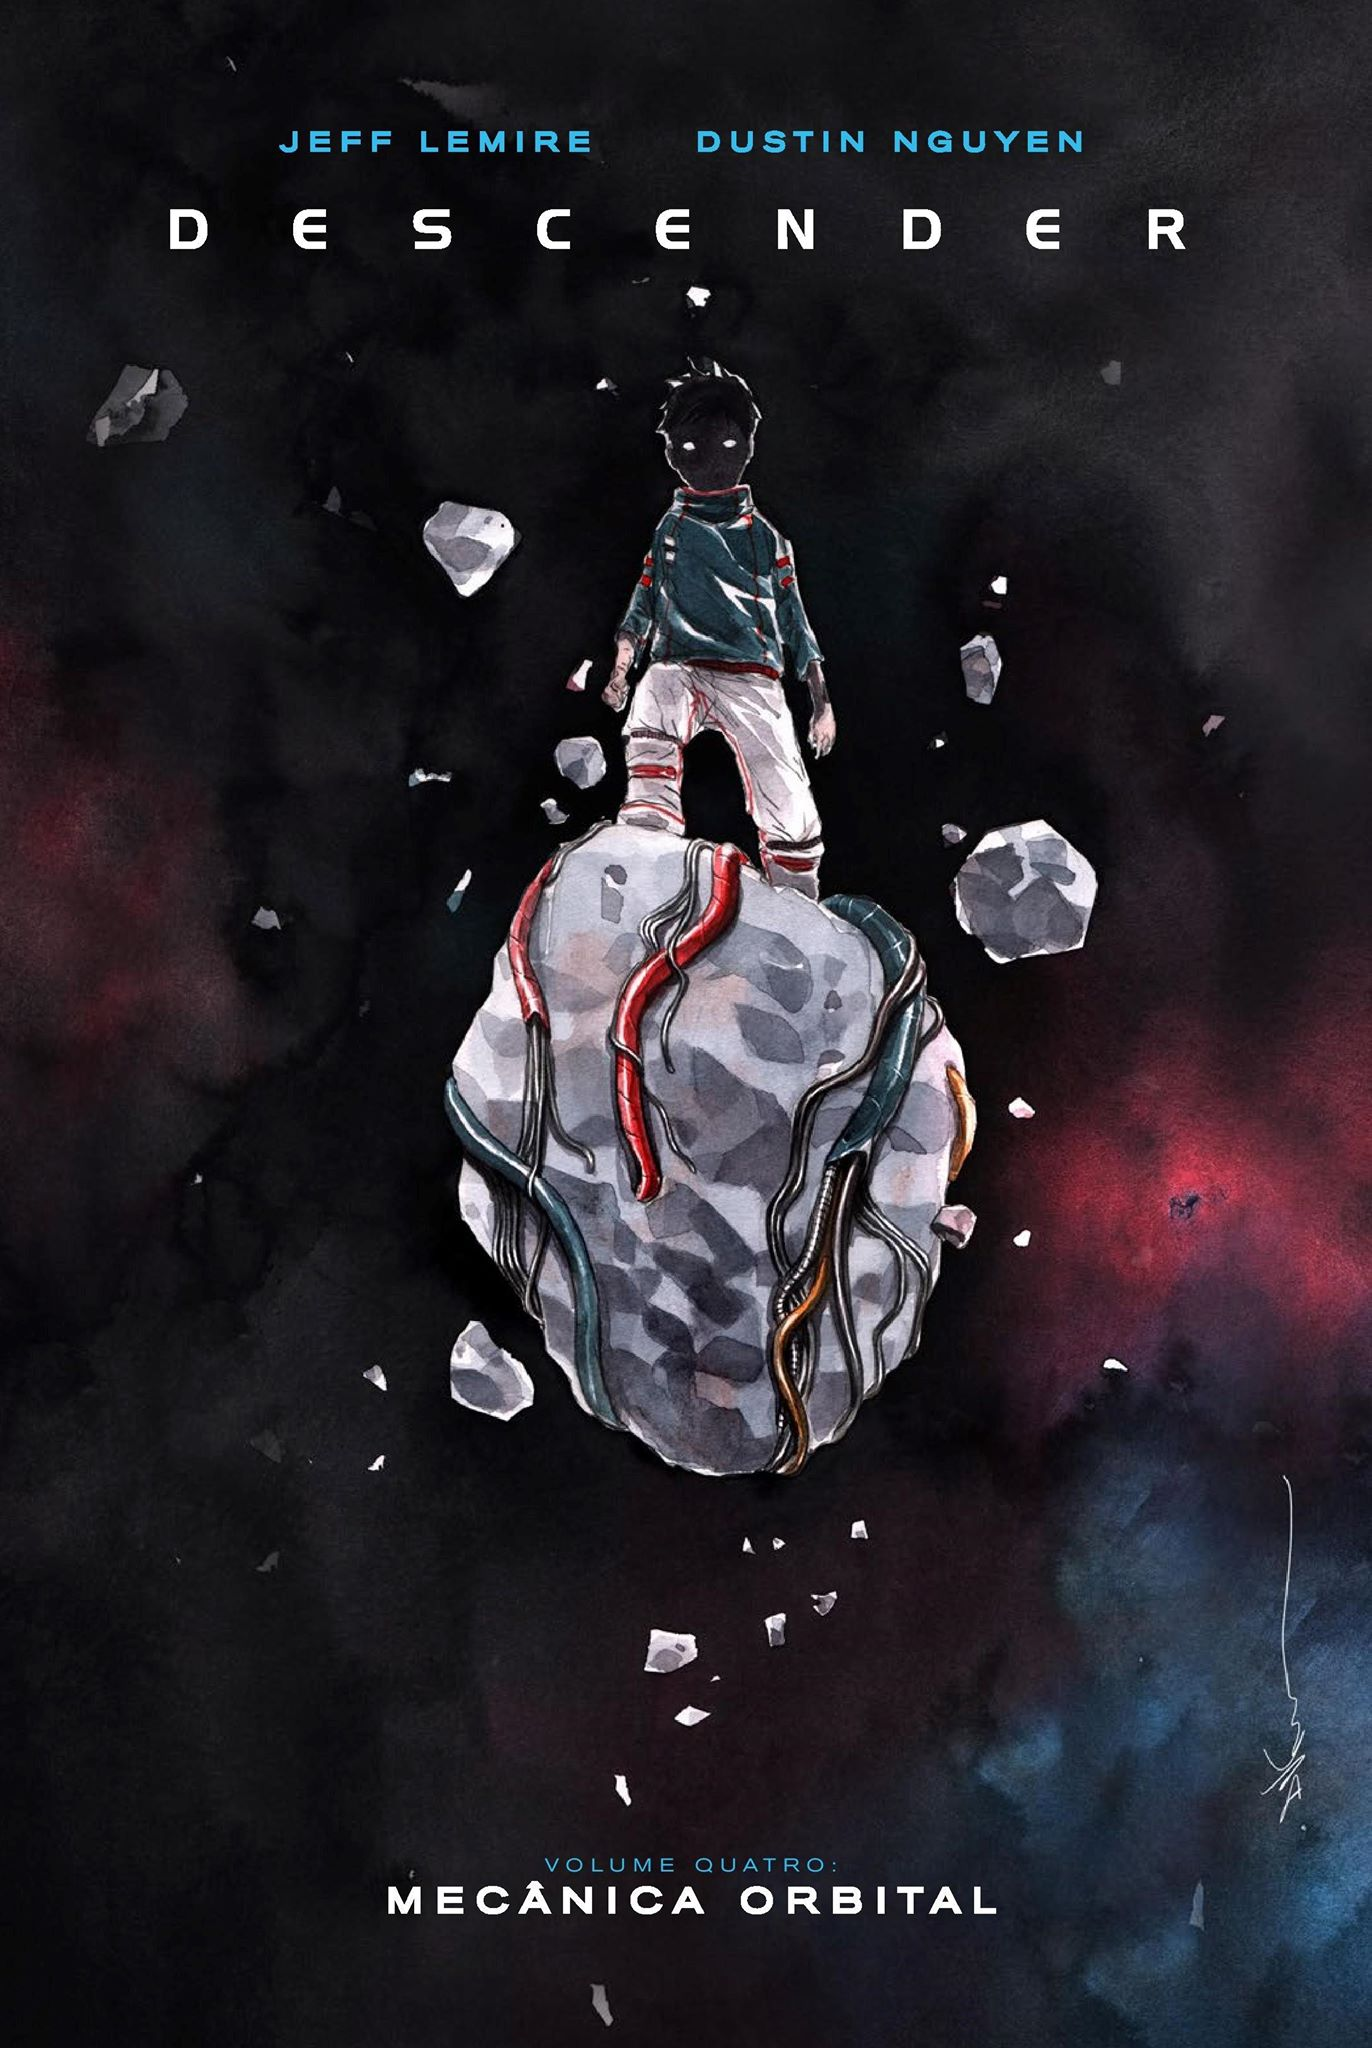 DESCENDER vol. 4: MECÂNICA ORBITAL